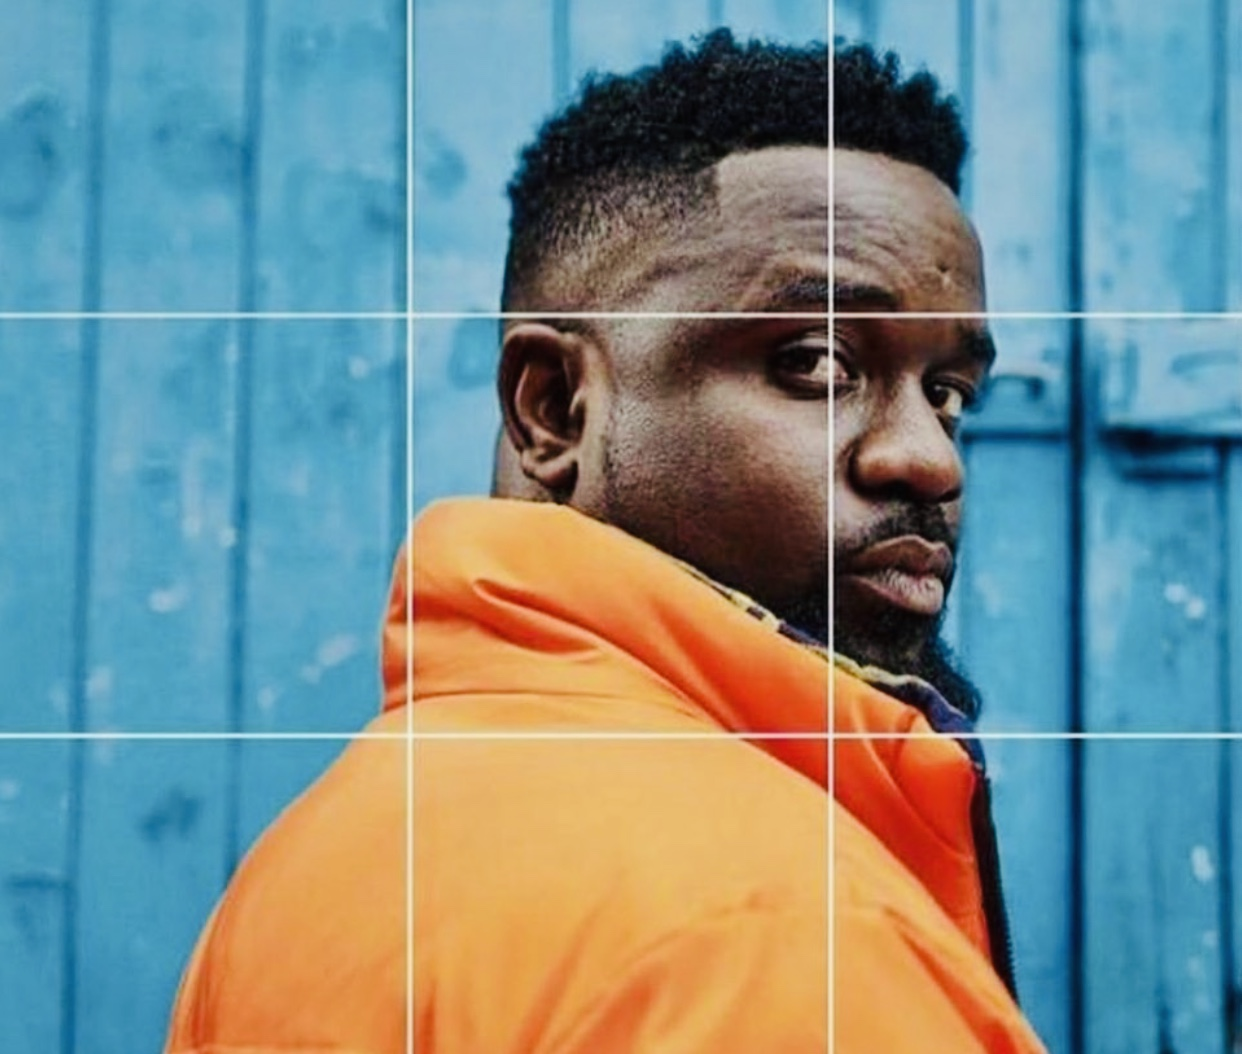 """Sarkodie to release """"Black Love"""" Album which features Hollywood star Idris Elba, Efya, Stonebwoy, Mr. Eazi, Kidi and many others"""